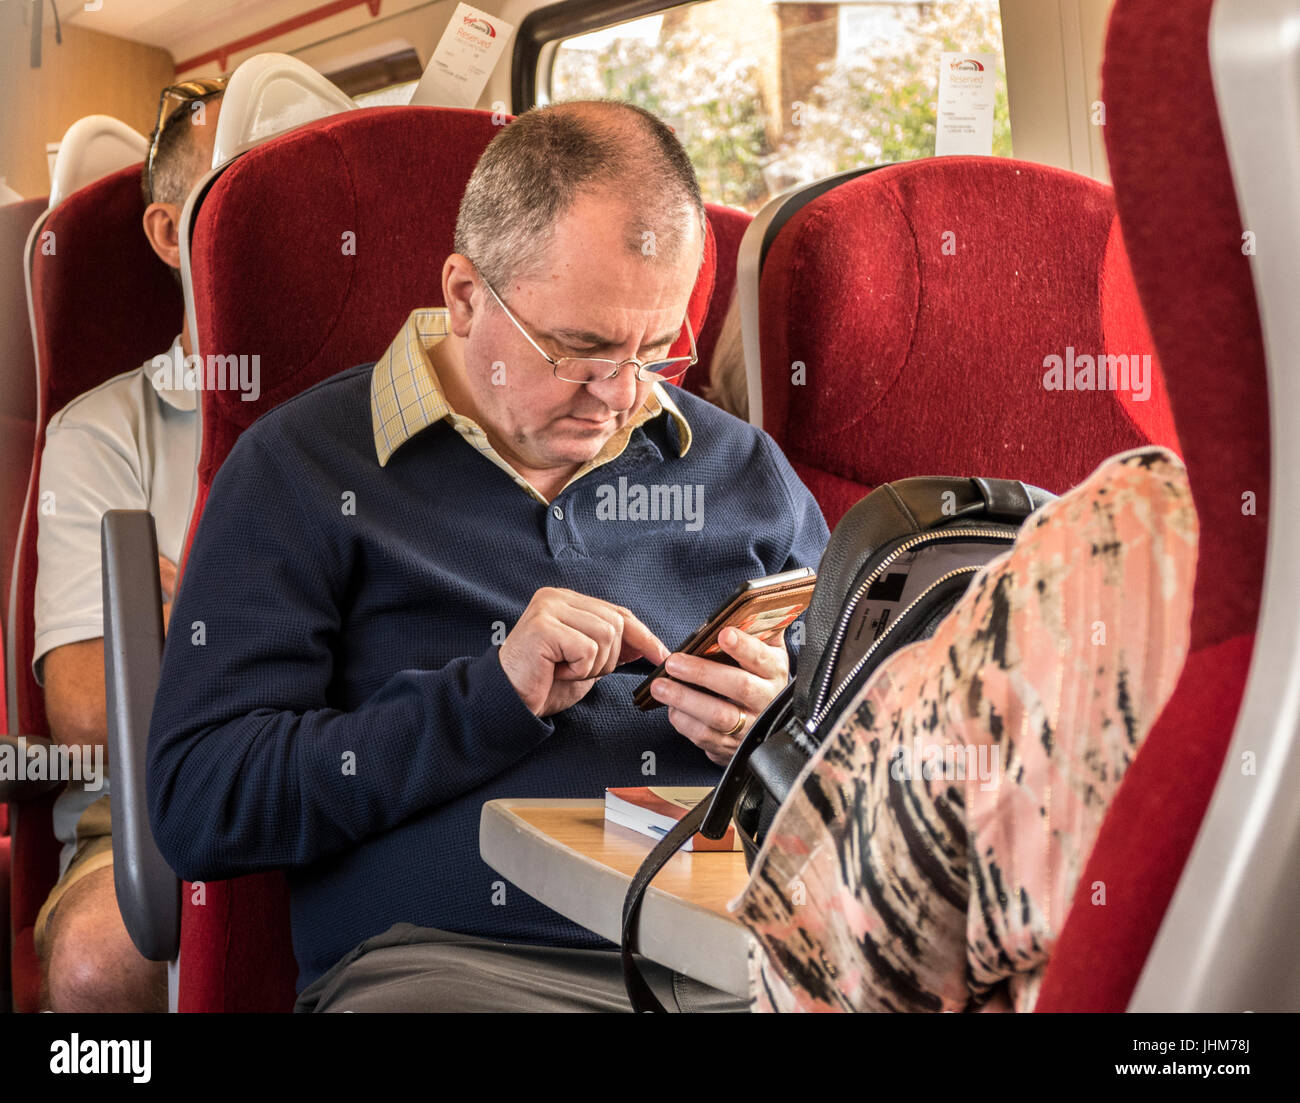 A middle aged man using his mobile phone on a train in England. UK. - Stock Image